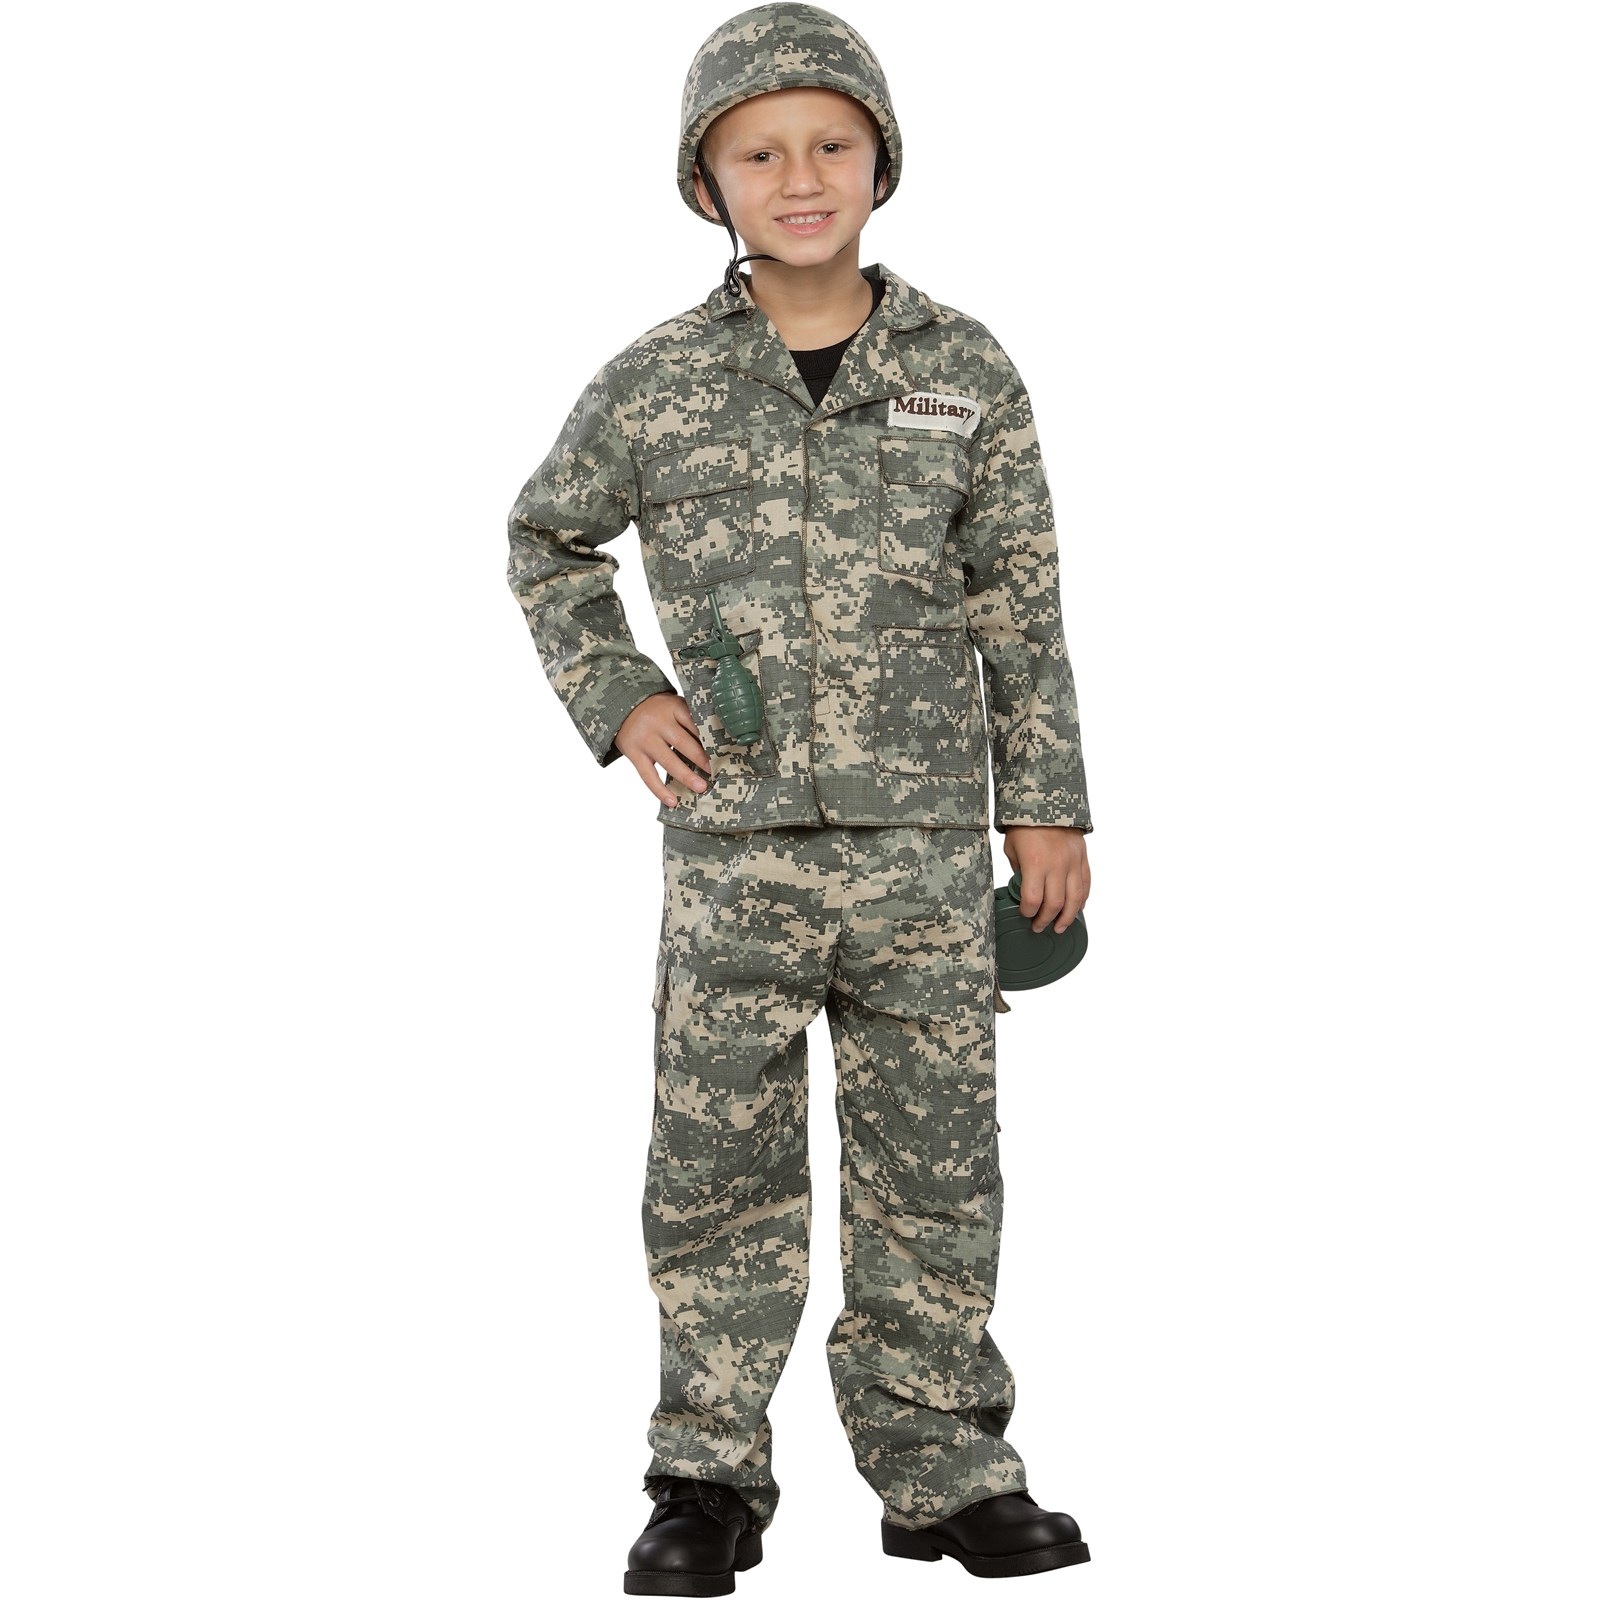 Italian Boy Name: Army Soldier Child Costume